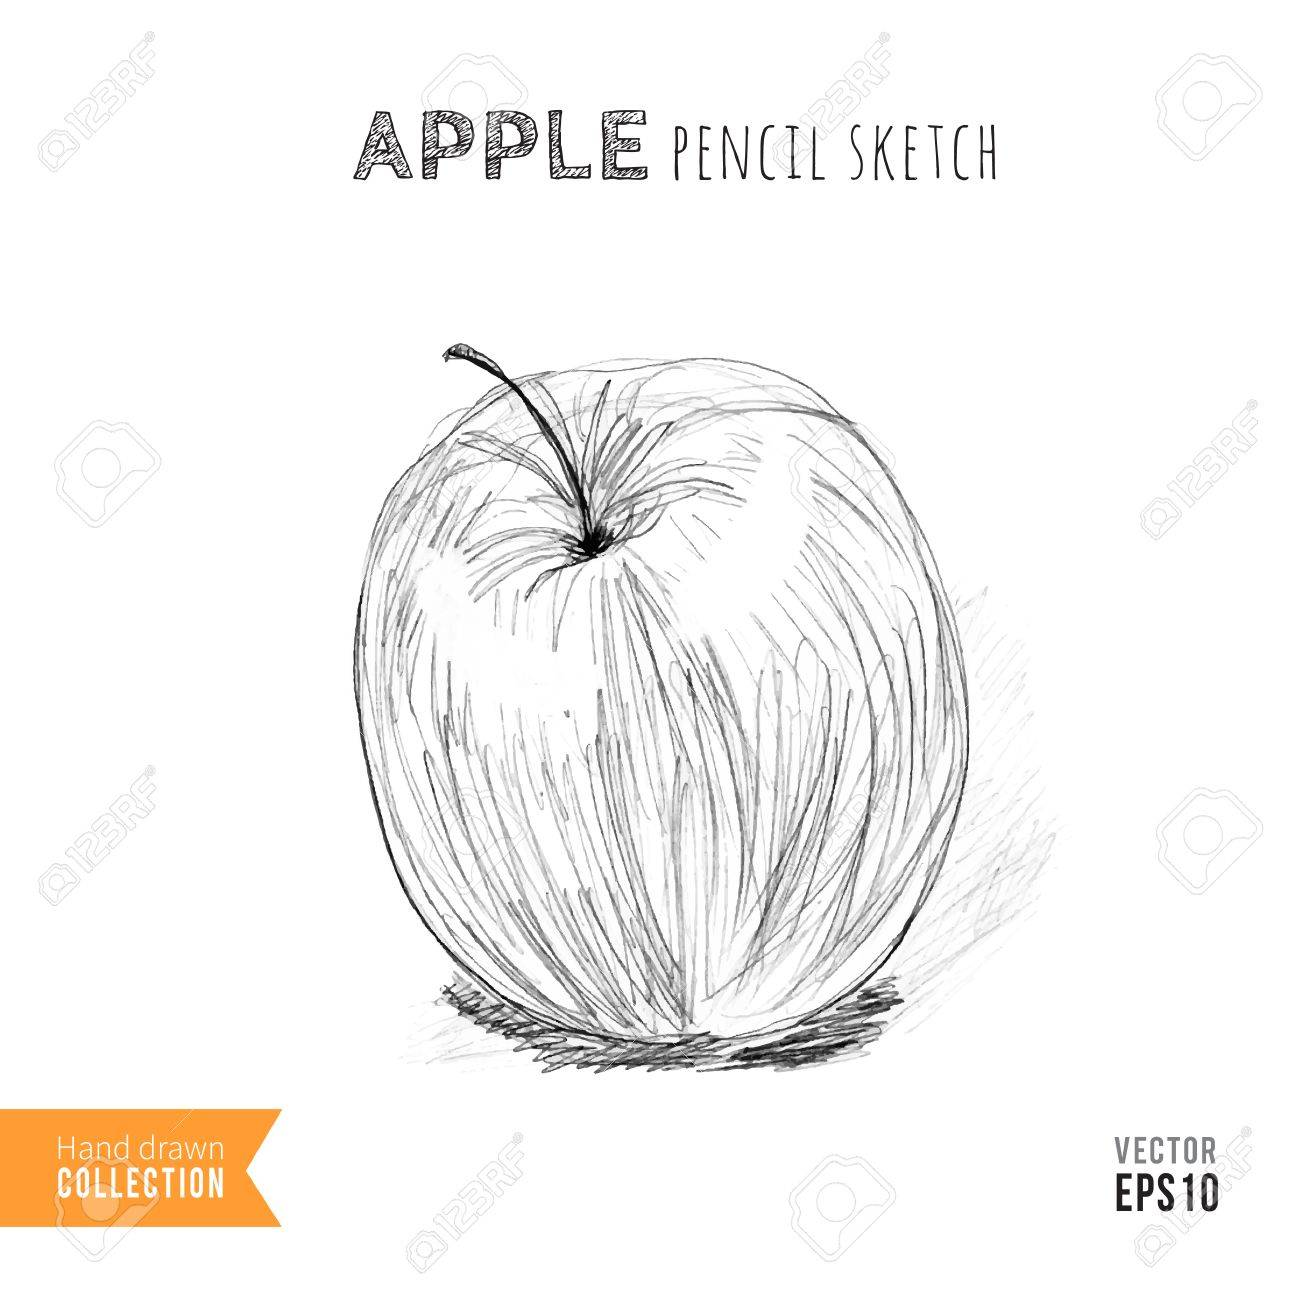 Hand drawn apple pencil sketch on white vector illustration